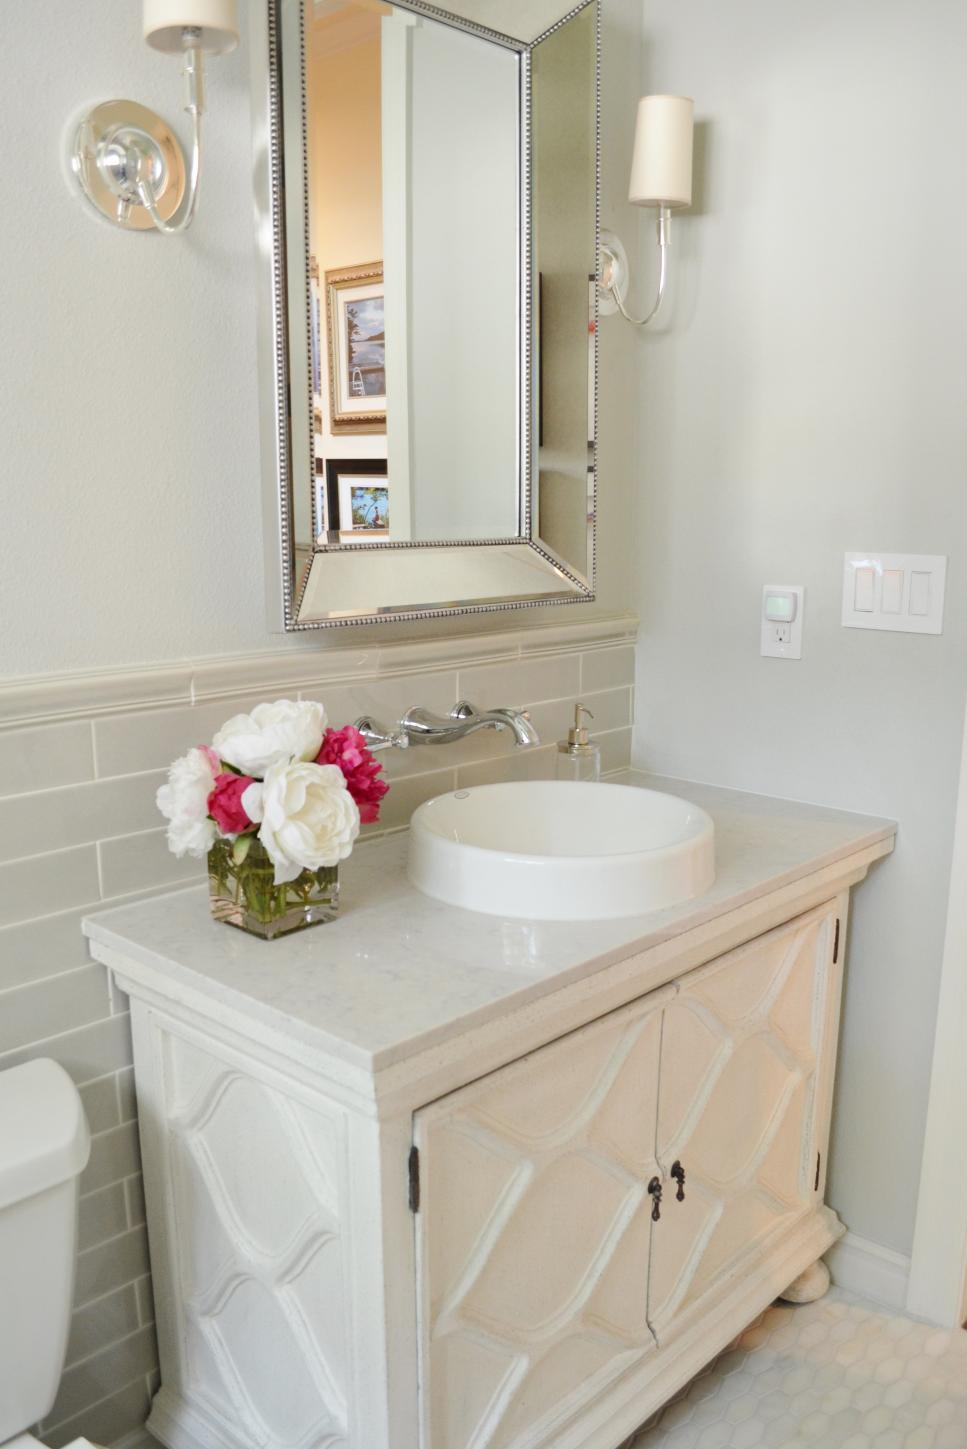 BeforeandAfter Bathroom Remodels on a Budget HGTV